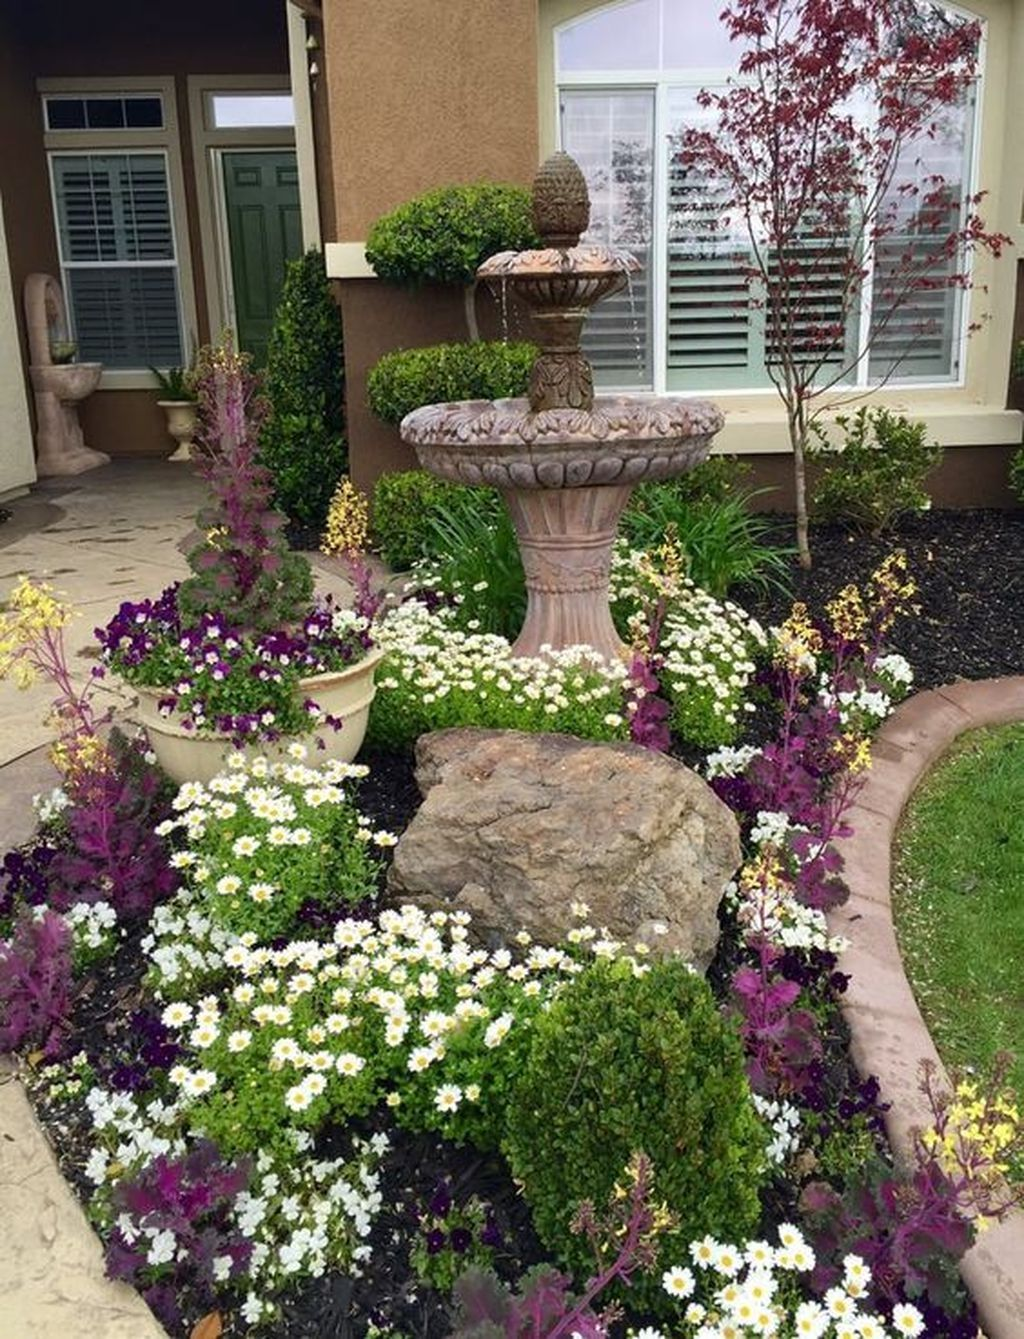 42 Rustic Front Yard Landscaping Ideas With Images Front Yard